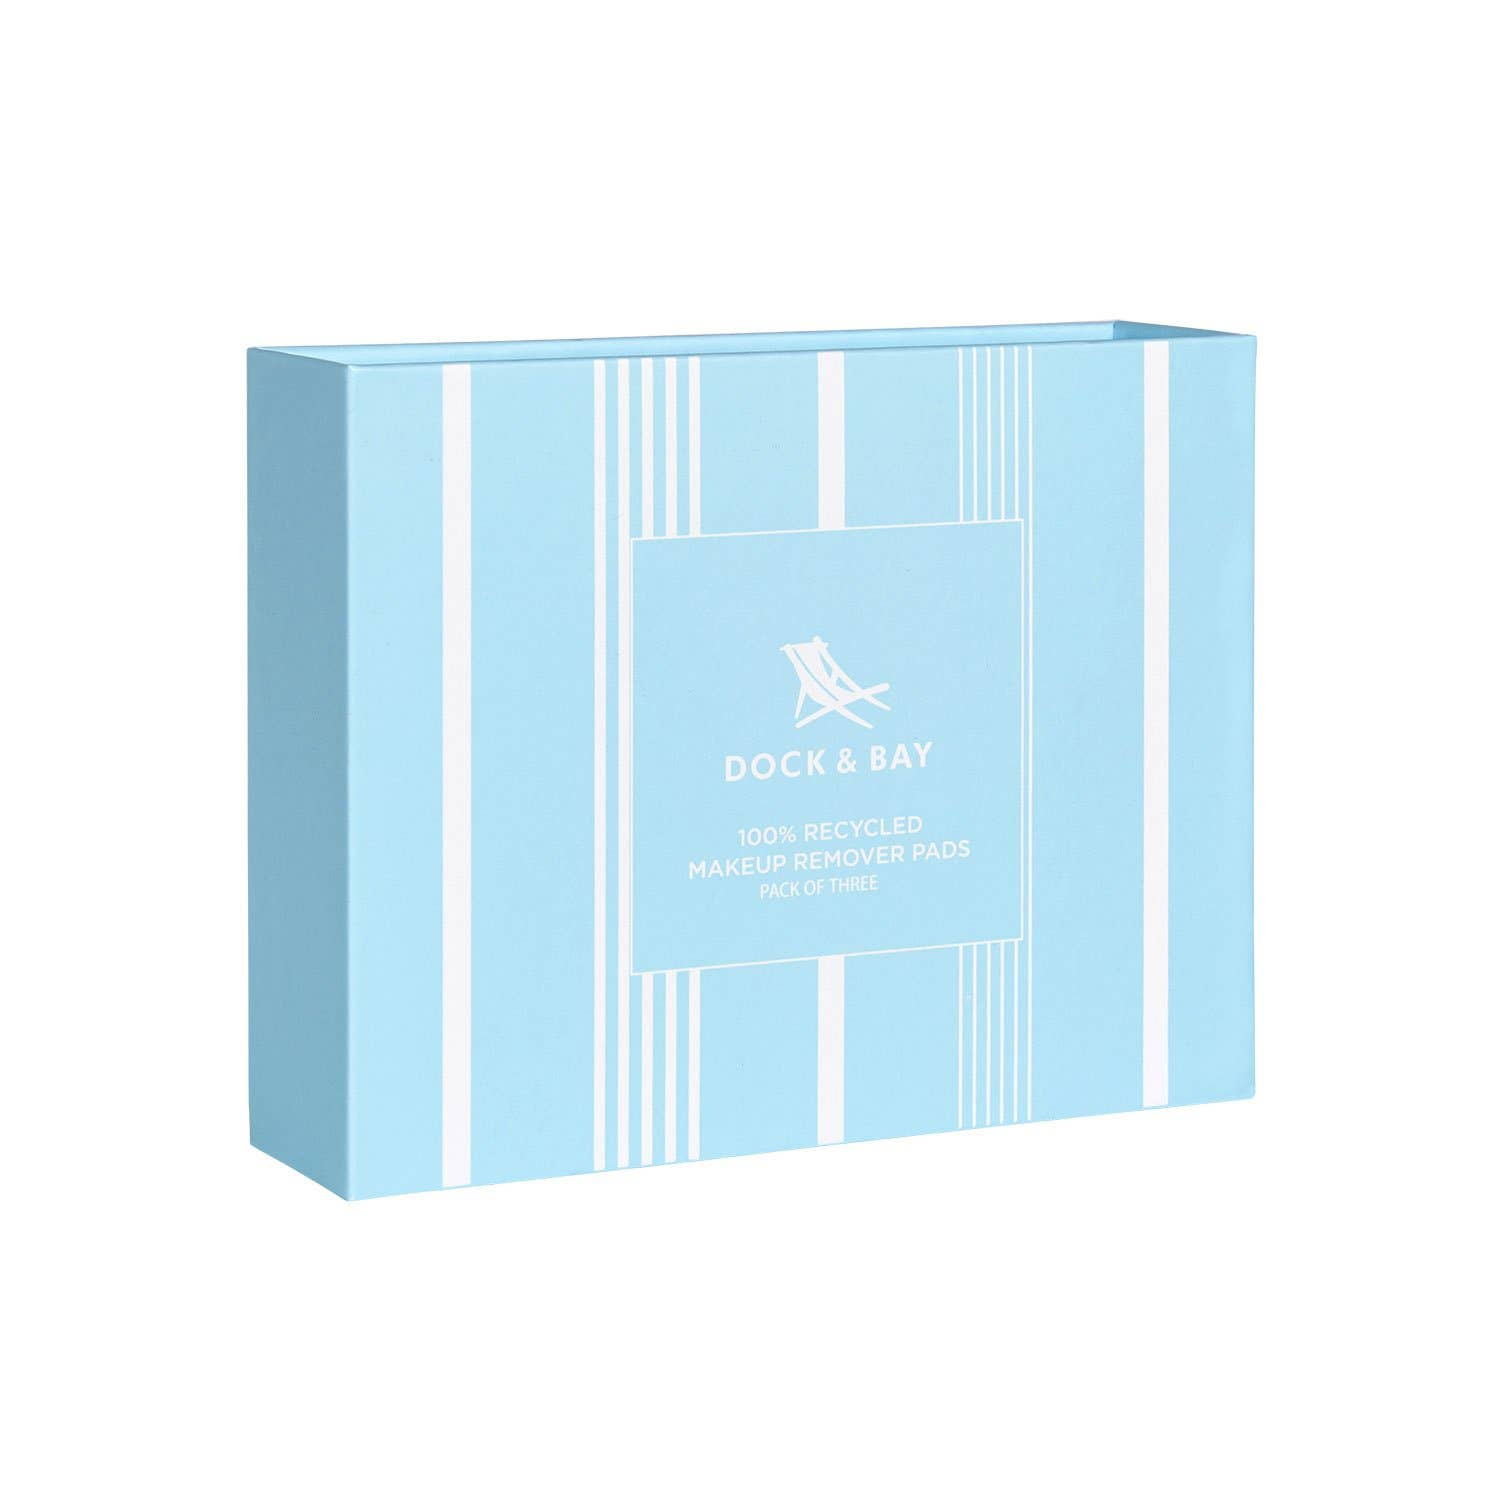 Dock & Bay - Reusable Makeup Removers - Chamomile Blue - 3 Pack